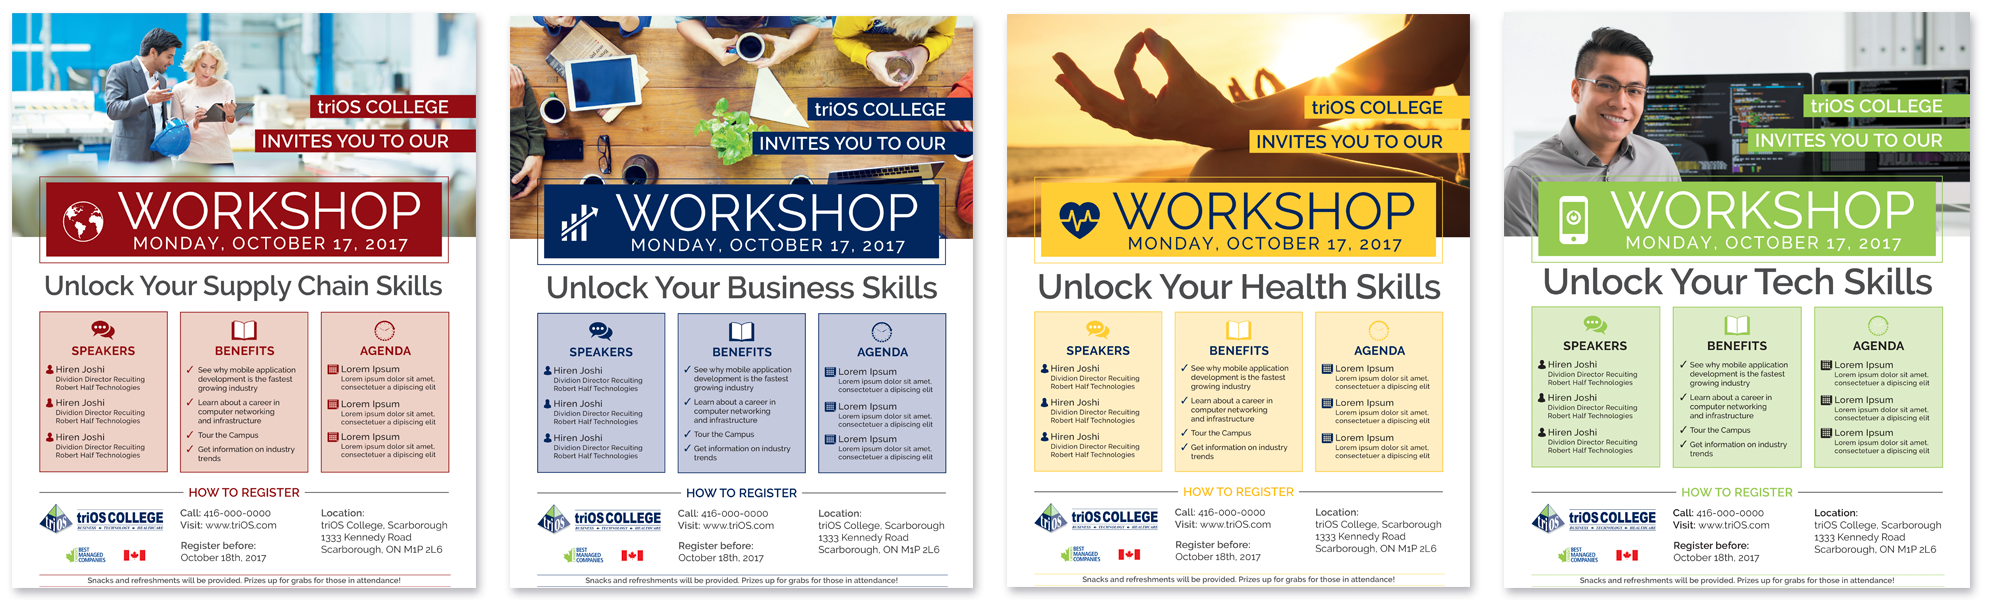 triOS College Workshop Templates